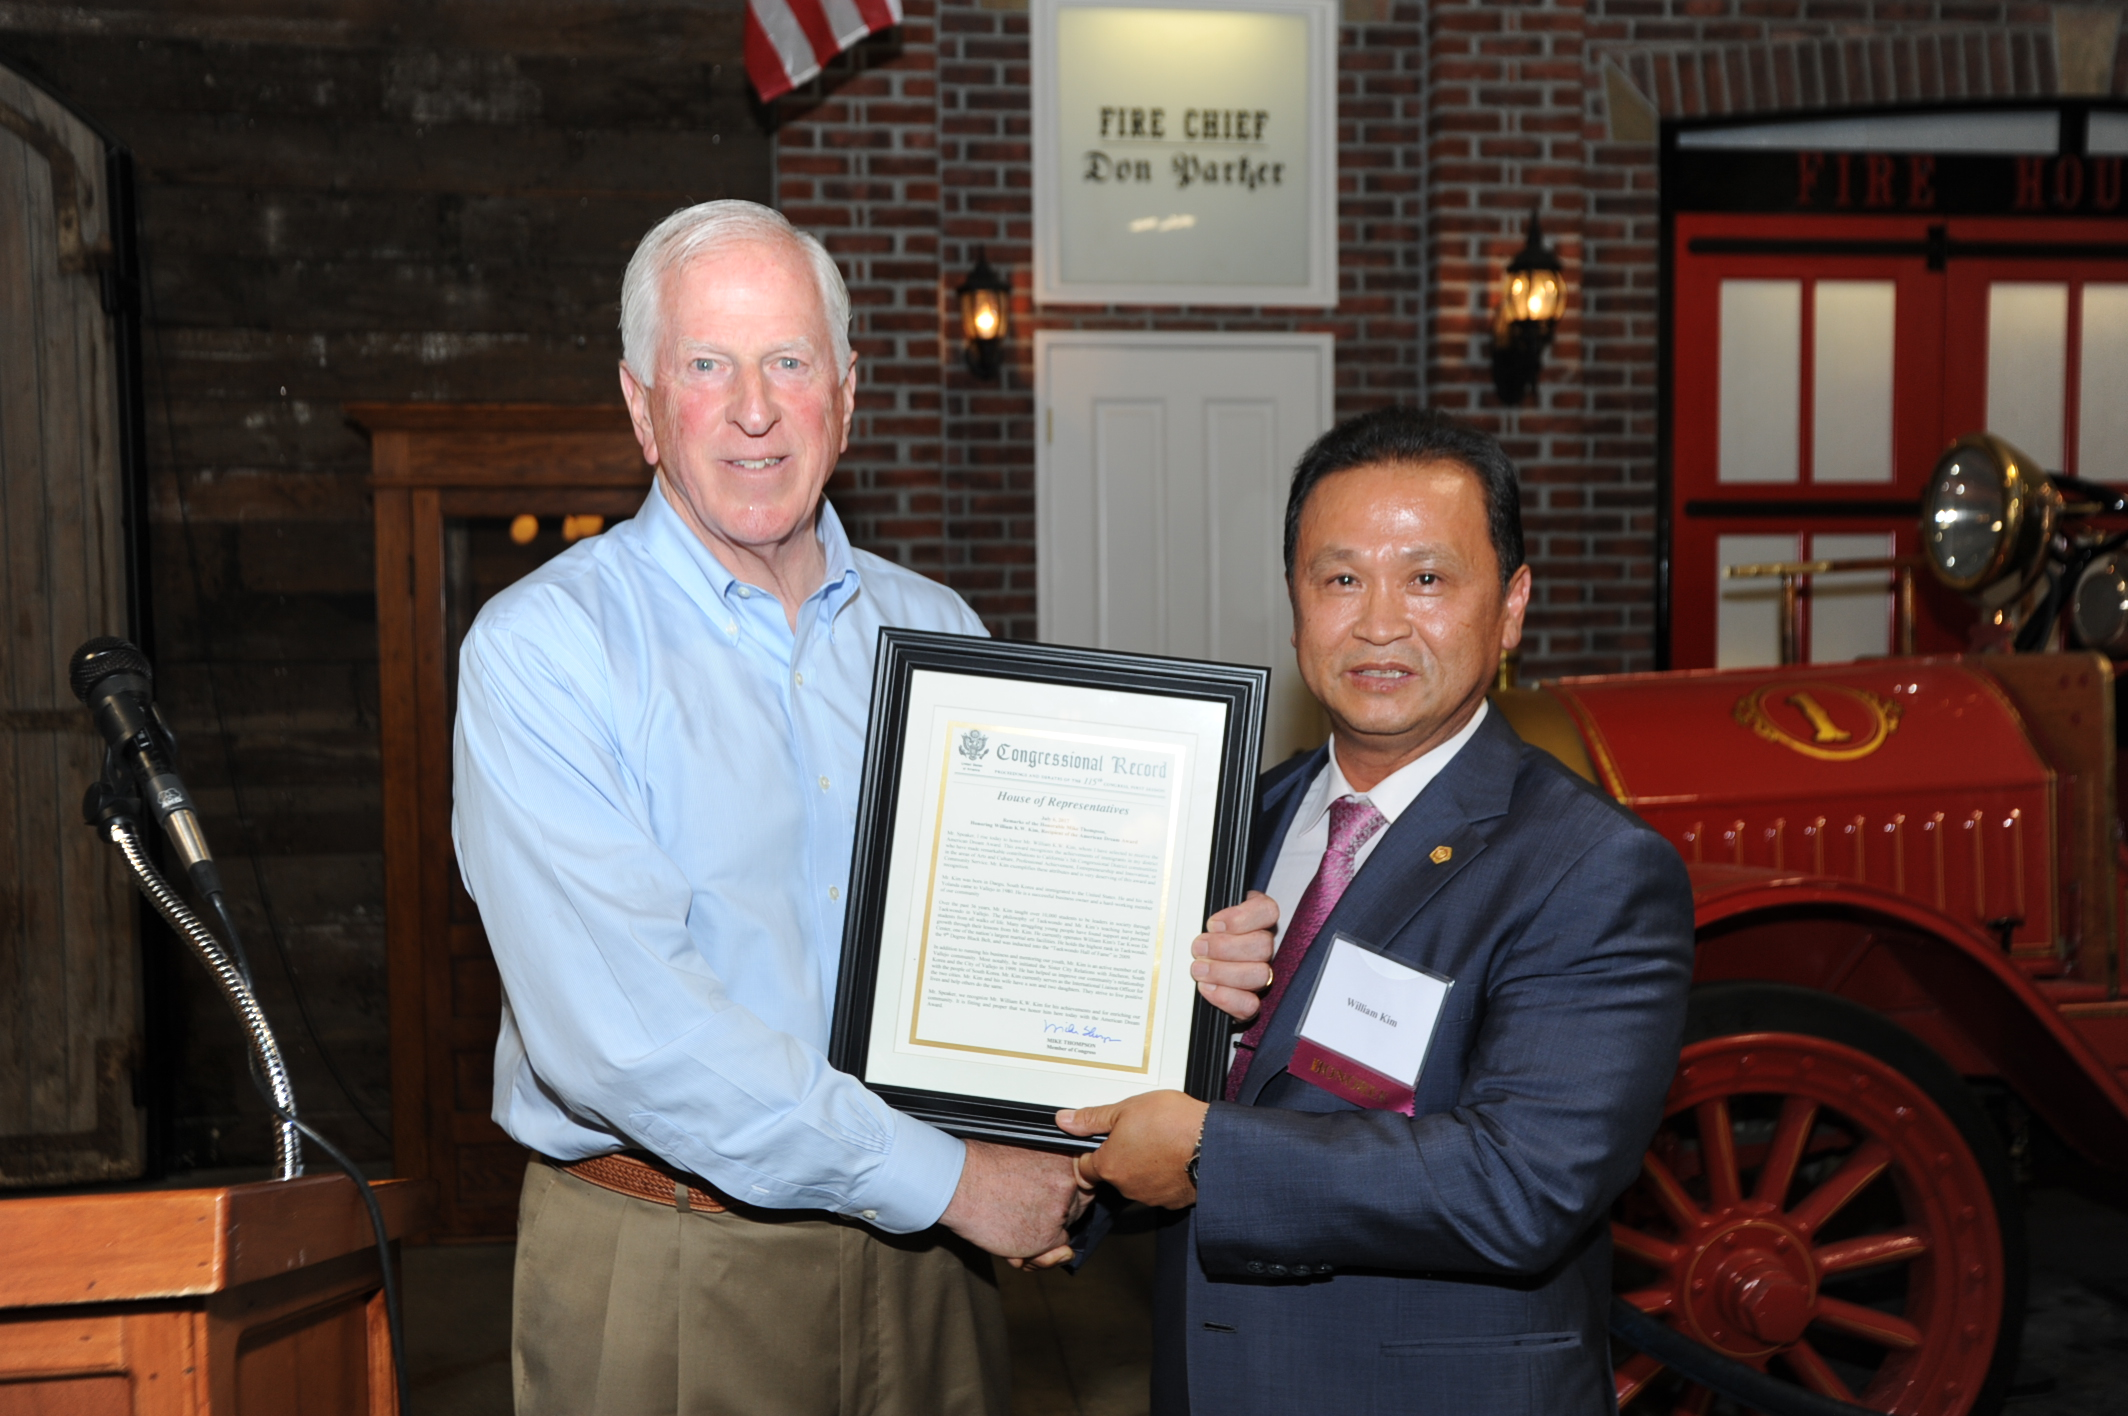 Rep. Thompson presents a My American Dream Award to William Kim